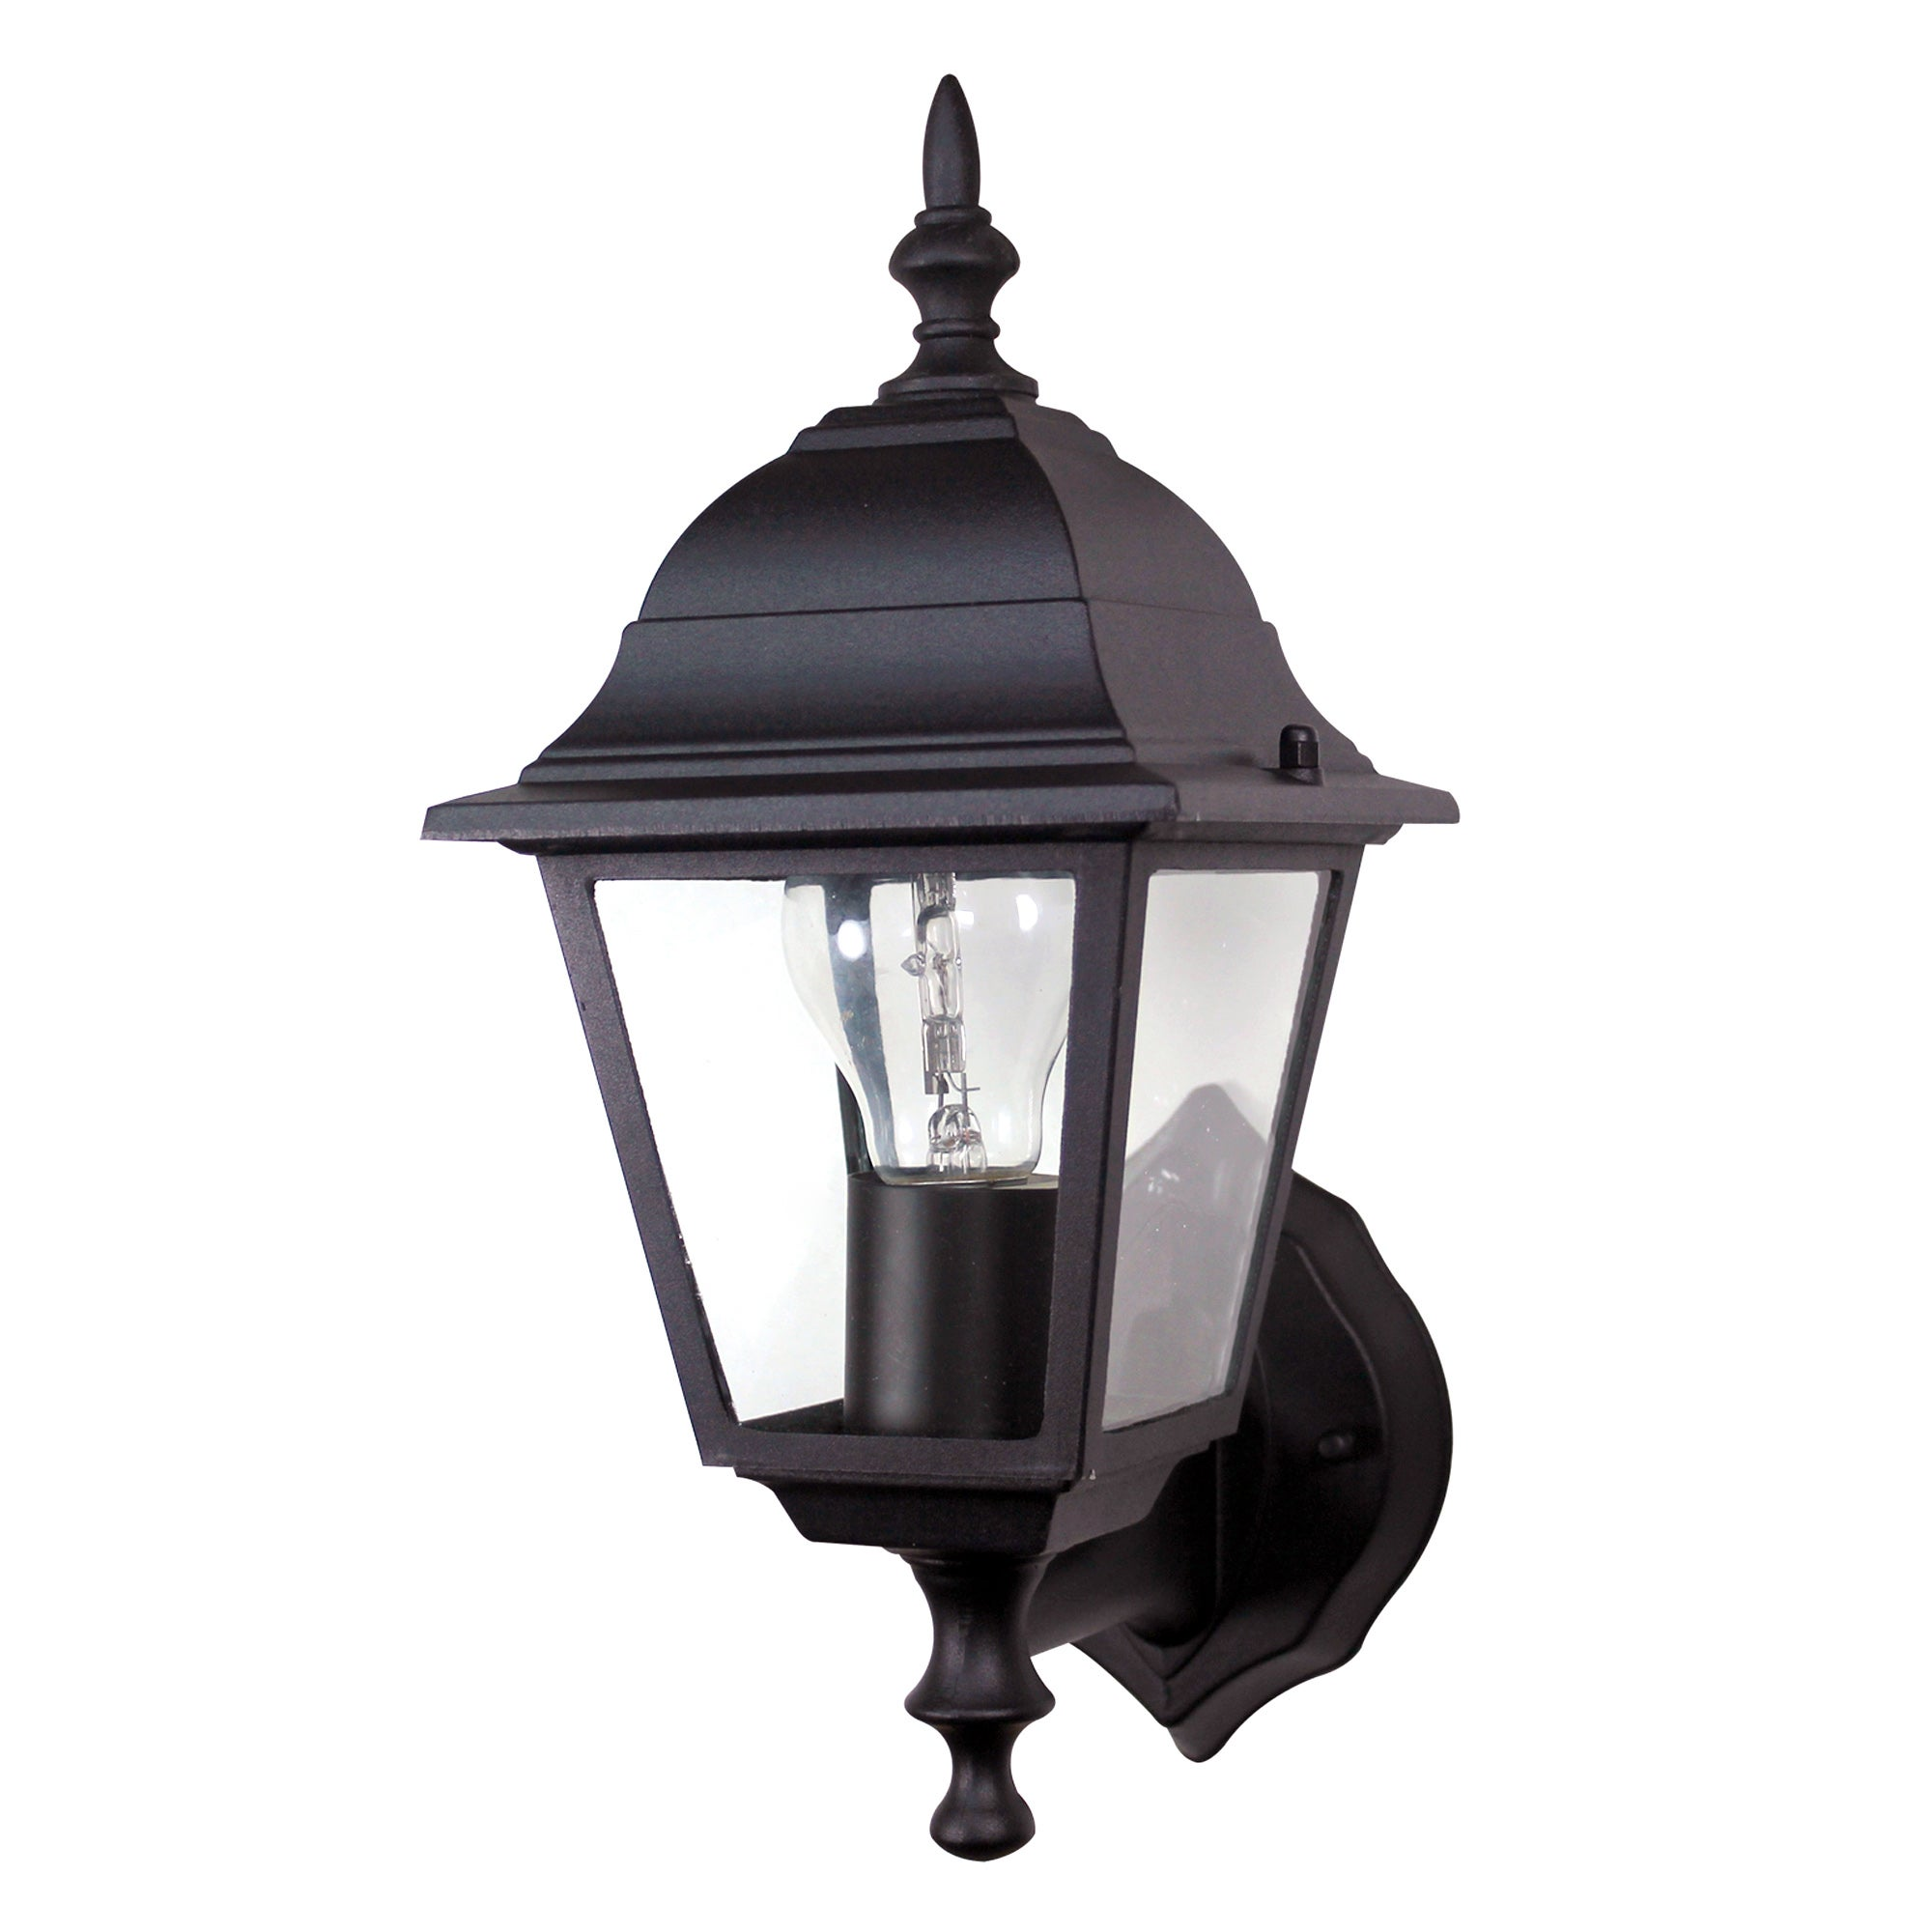 Outdoor 4 Sided Lantern